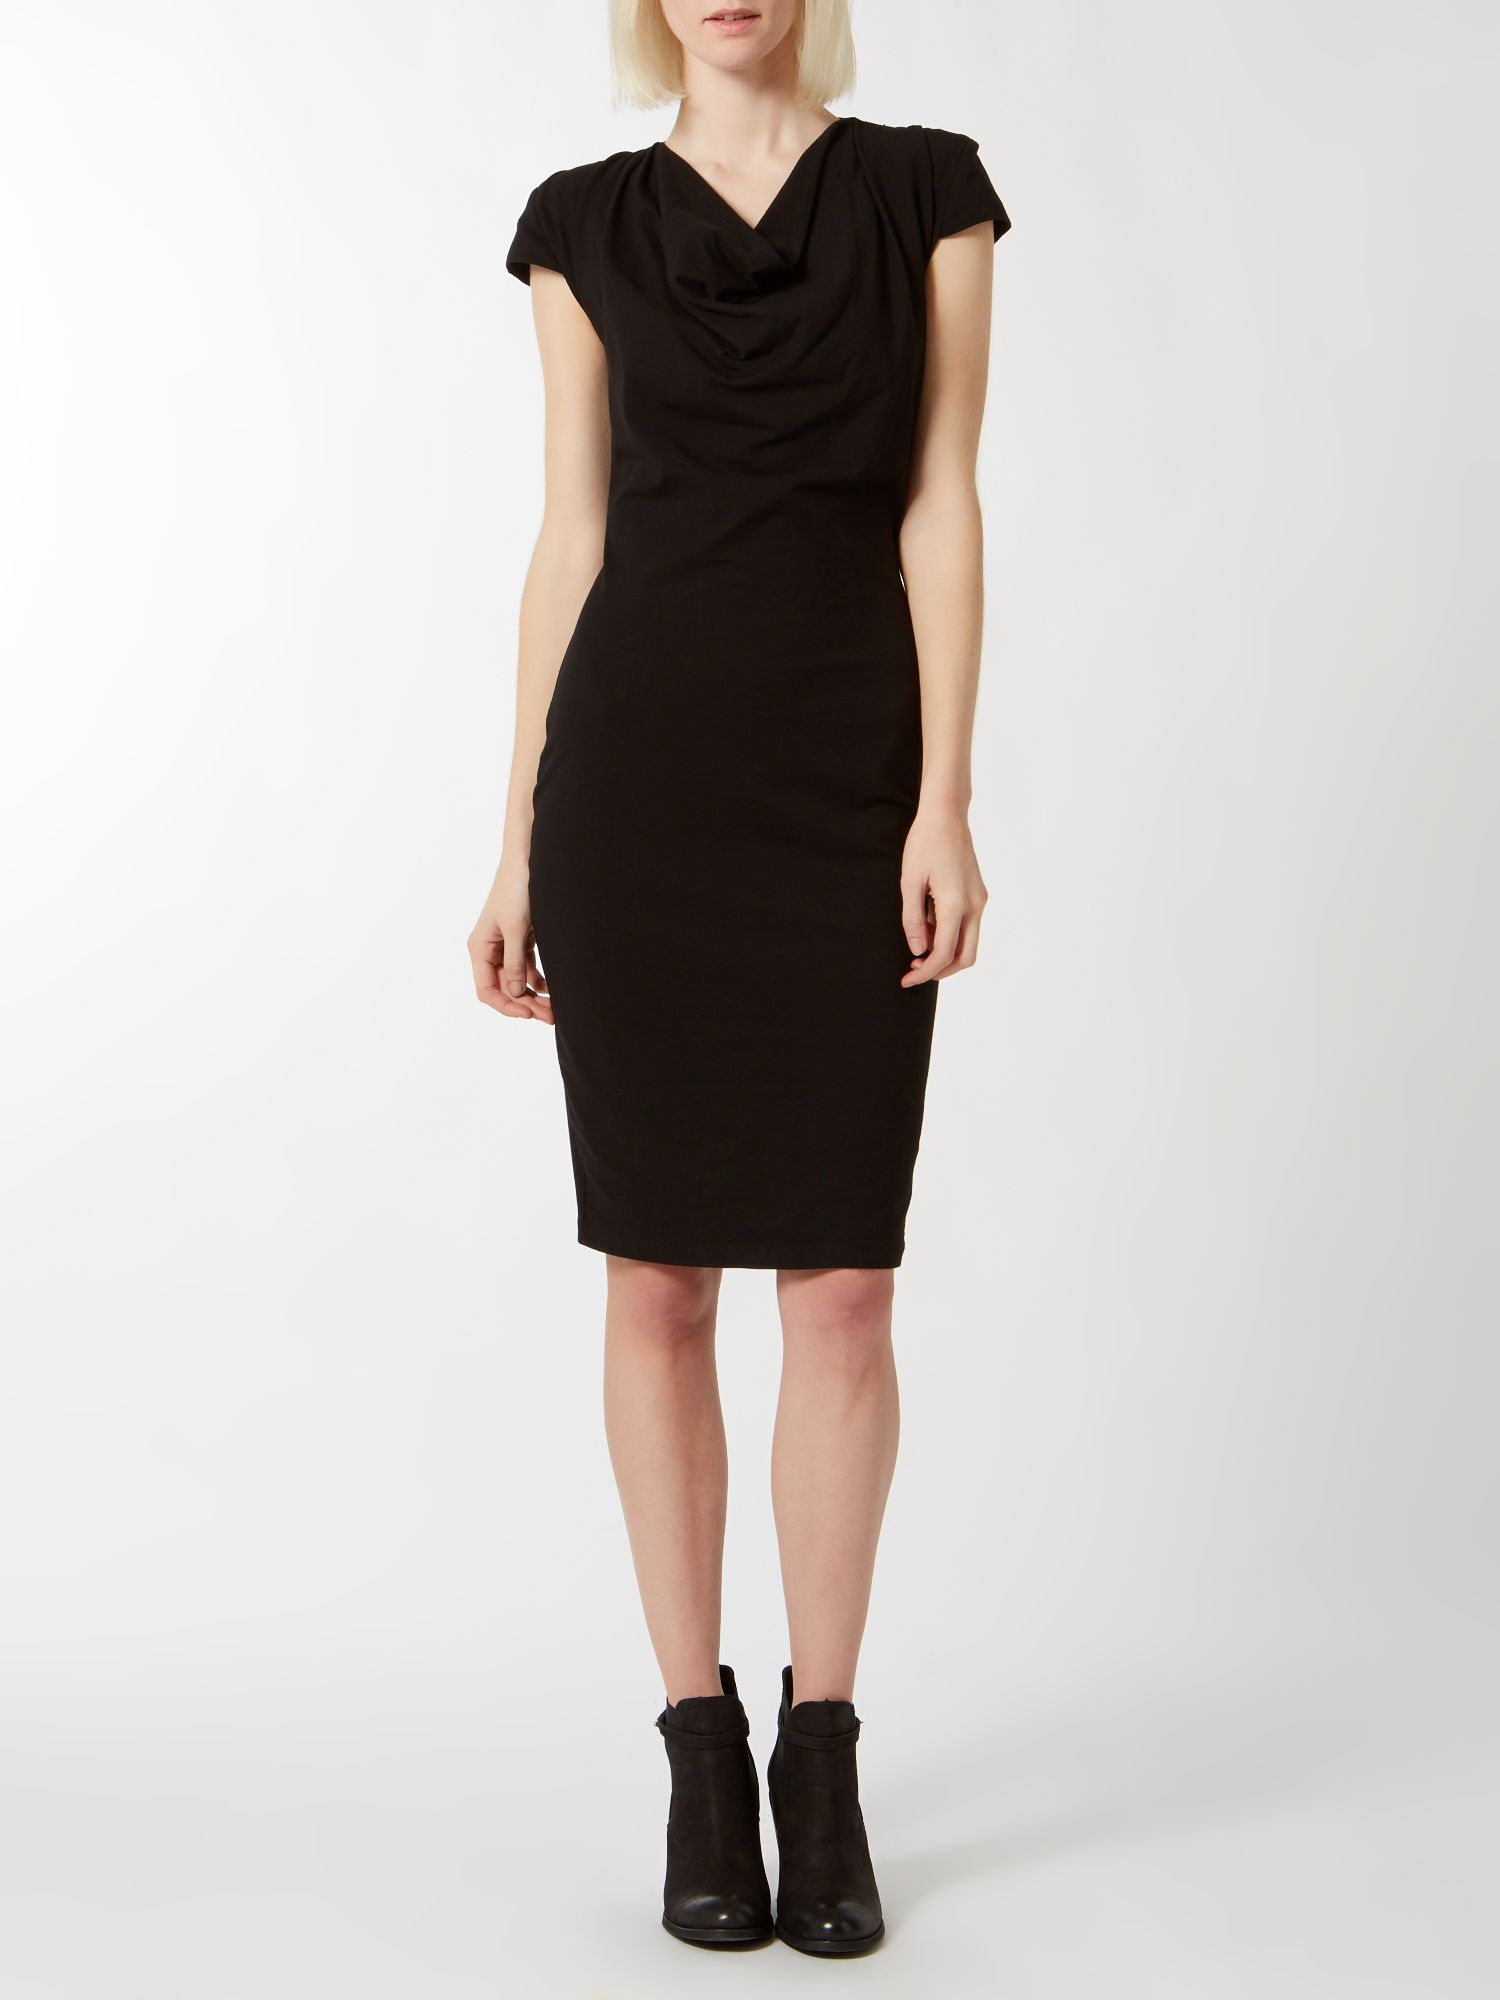 Cowl neck knee length dress